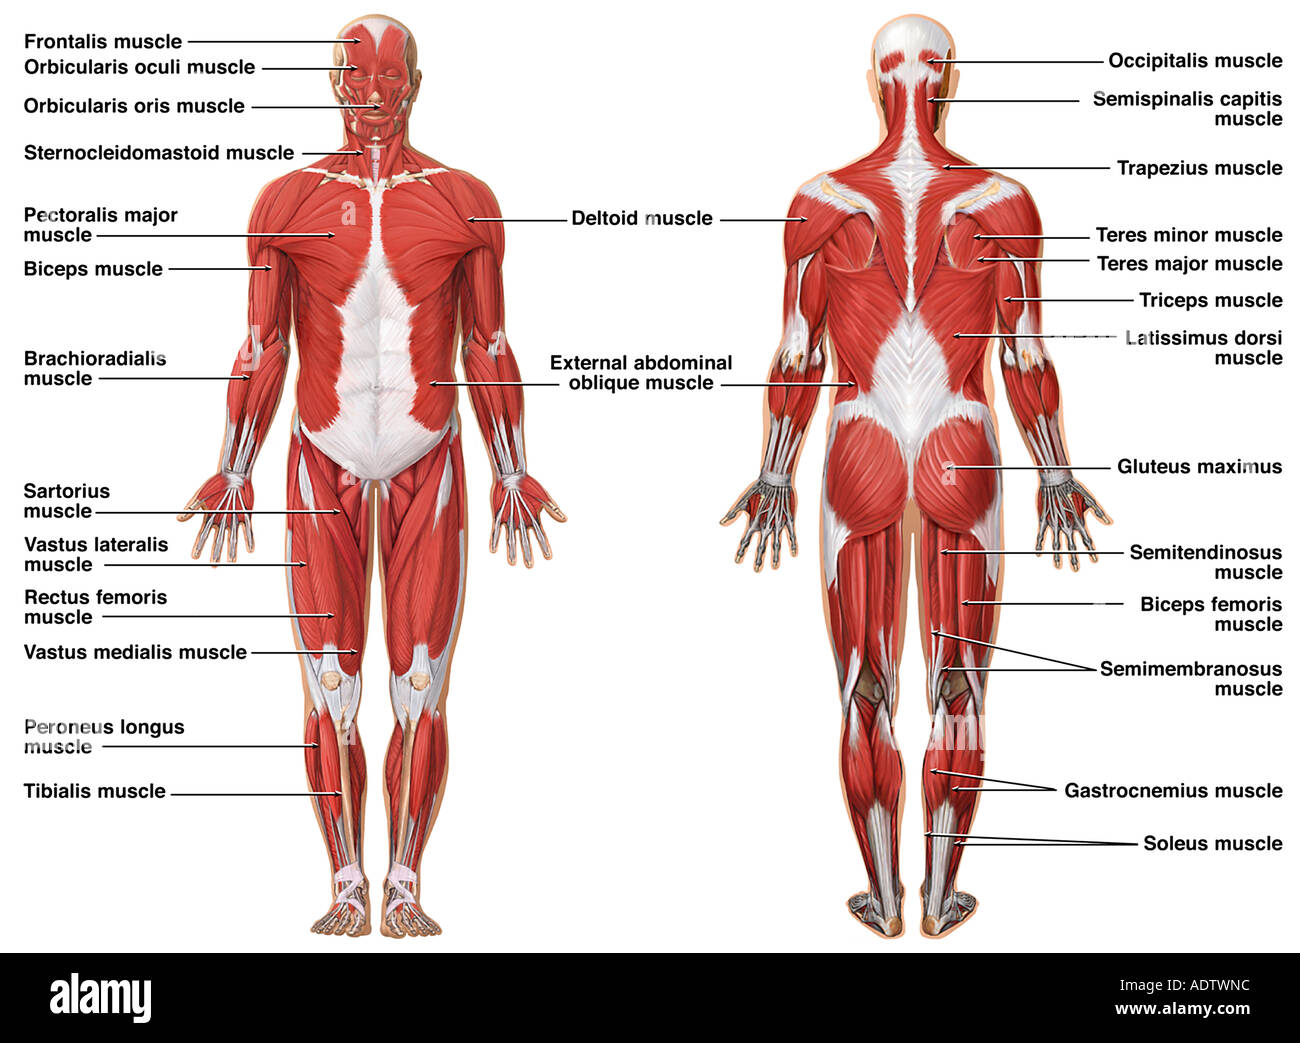 major muscle diagram to label waterfall development anatomy of the muscular system stock photo 7710491 alamy